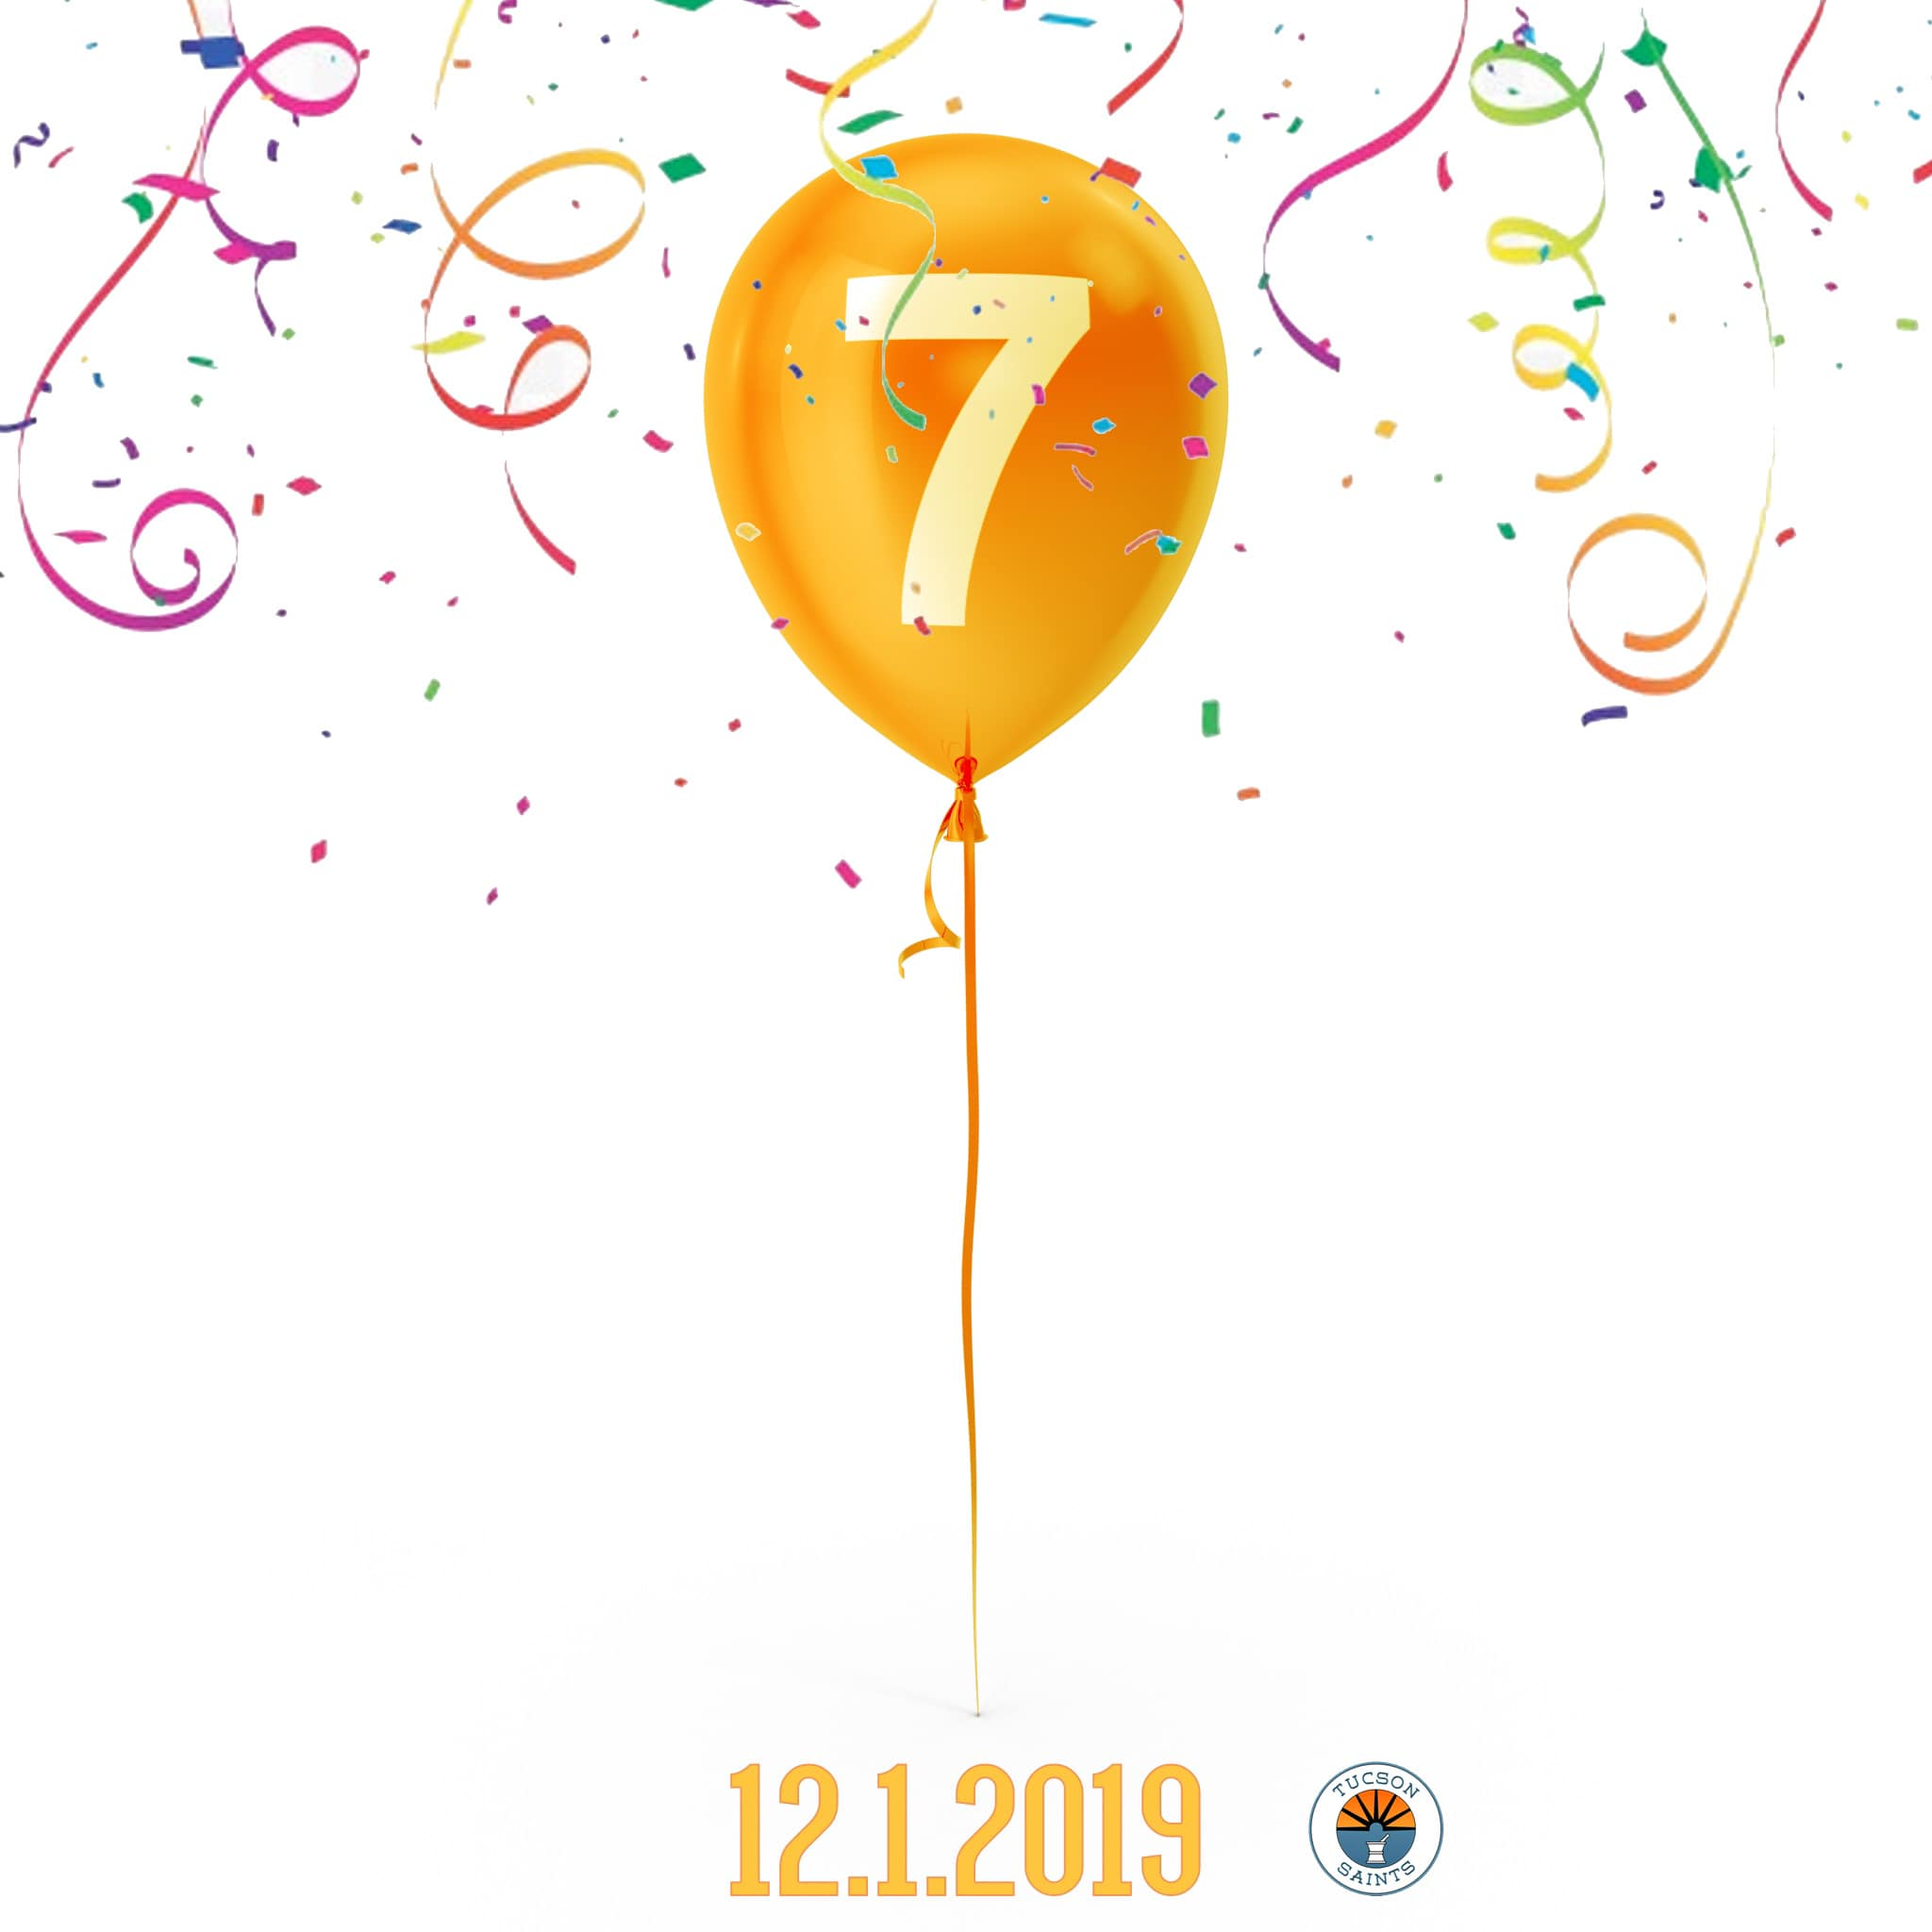 7 year dispensary anniversary tucson saints 2019